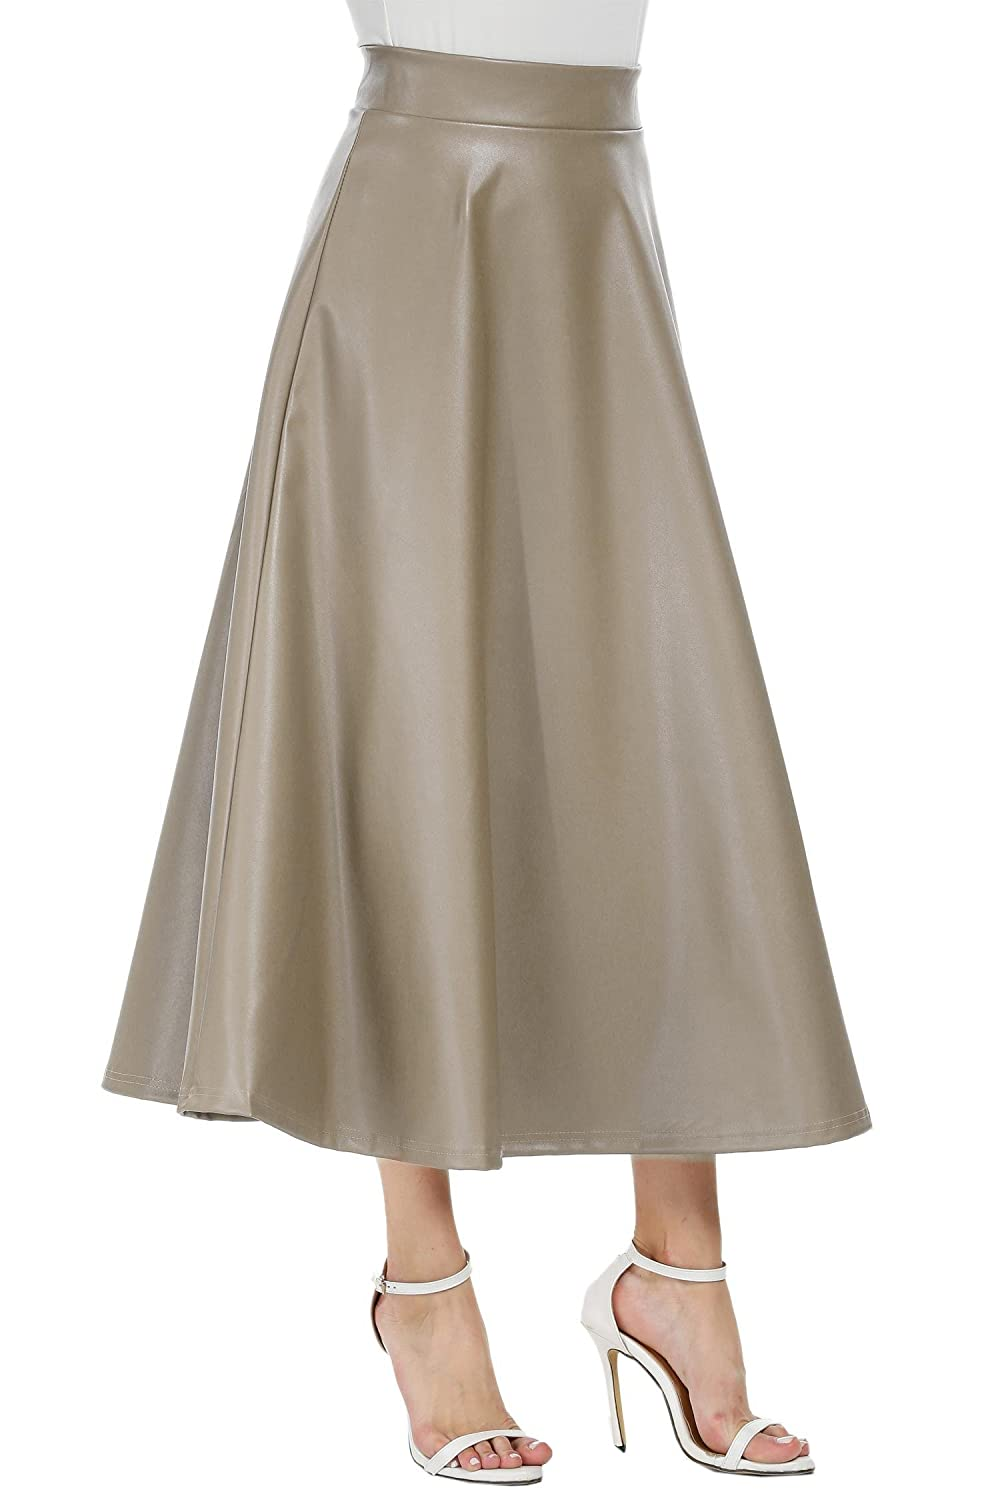 927719d4b ELESOL Women's Pleated High Waist Faux Leather Skirts Swing A-Line Maxi Skirt  at Amazon Women's Clothing store: